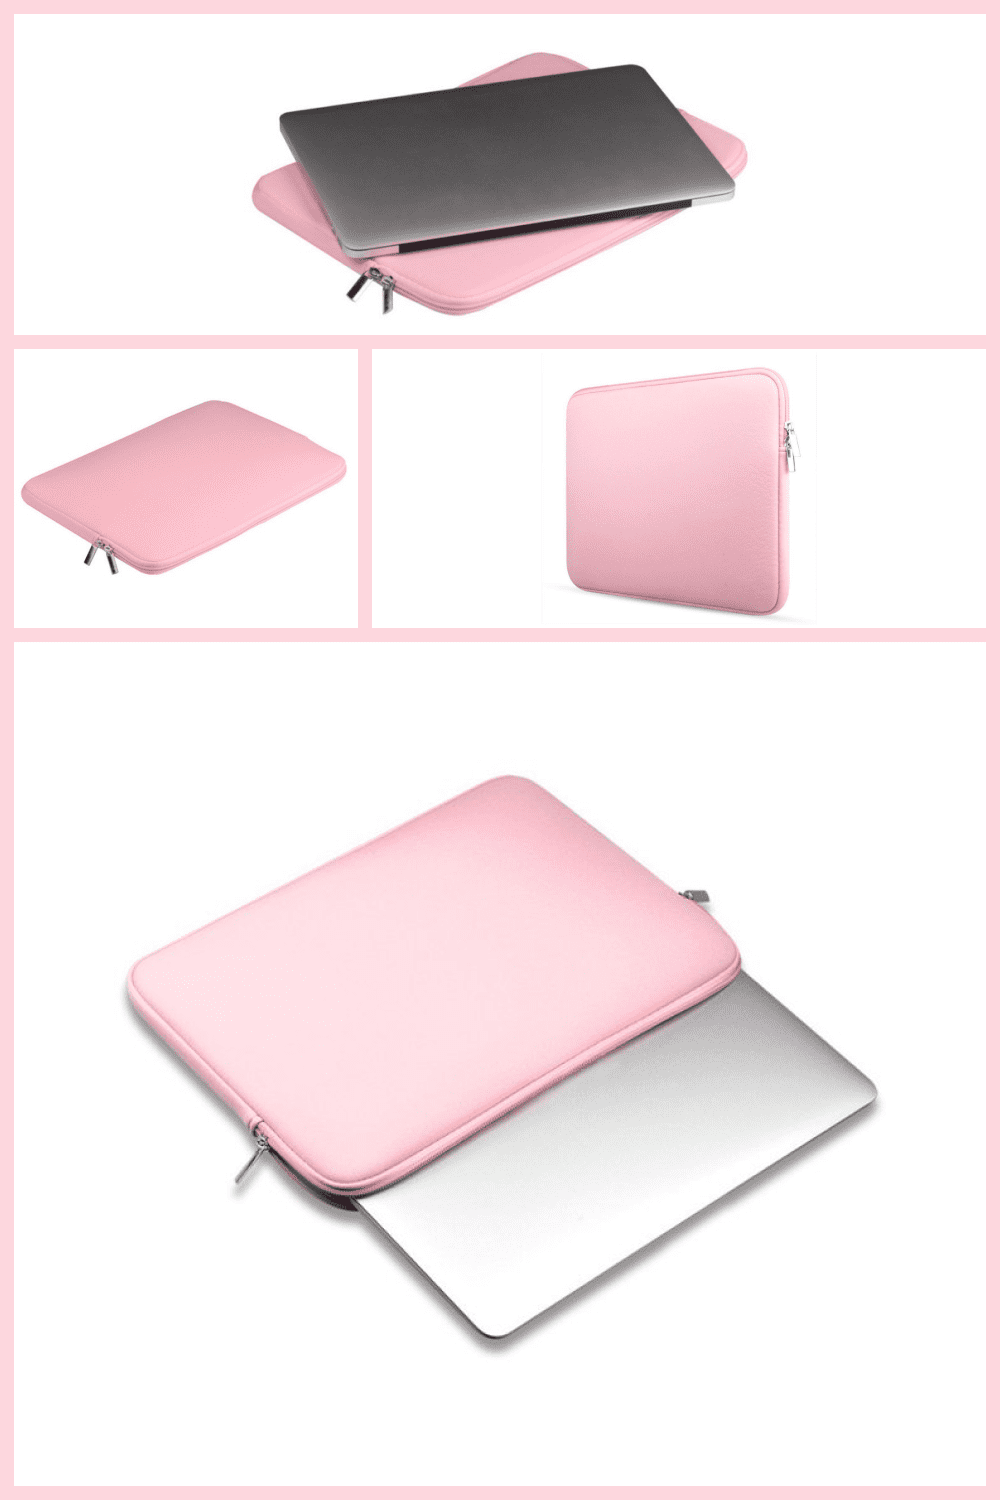 Pink soft cover for macbook to keep it safe.